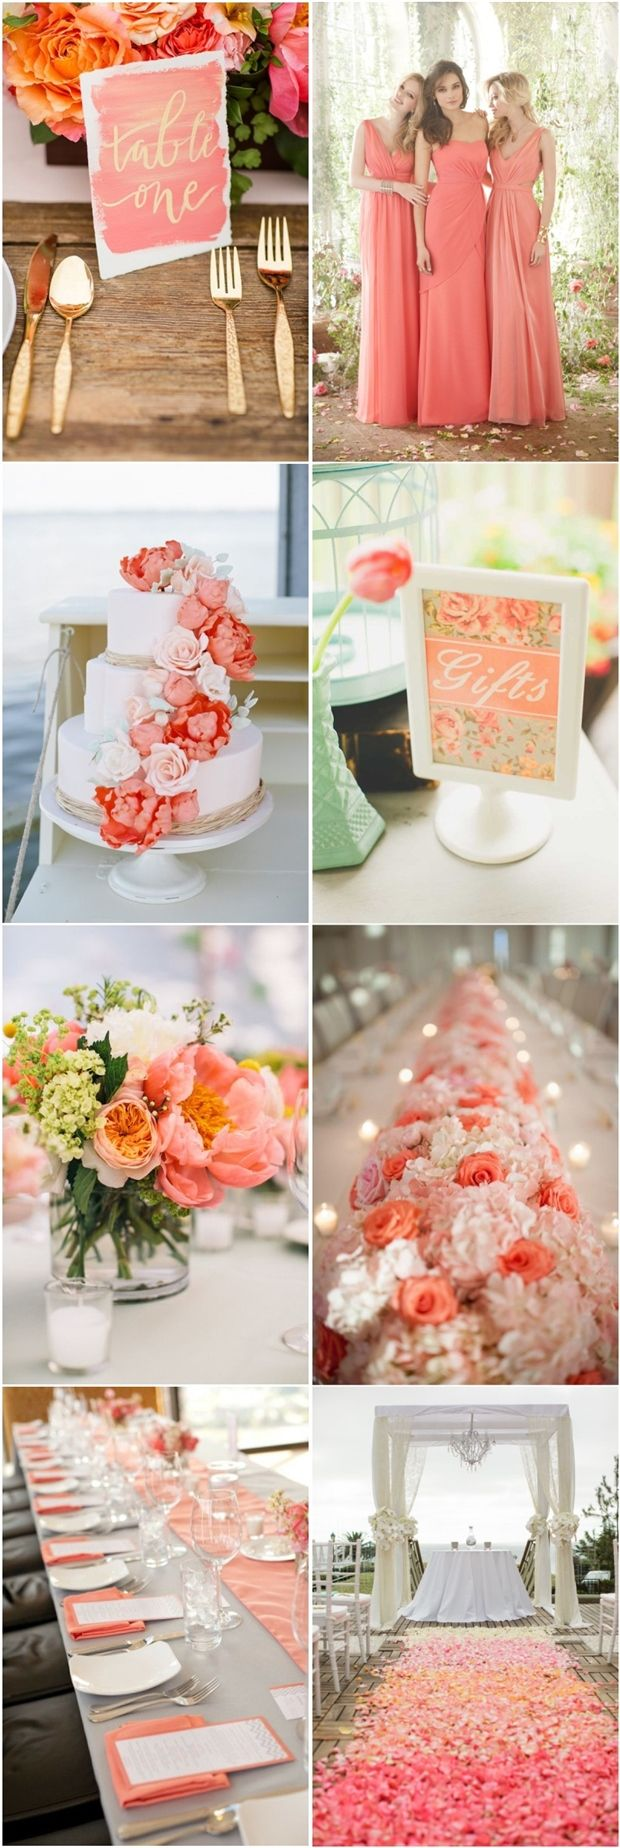 40 Cheerful Fall Orange Wedding Ideas Flowers Pinterest